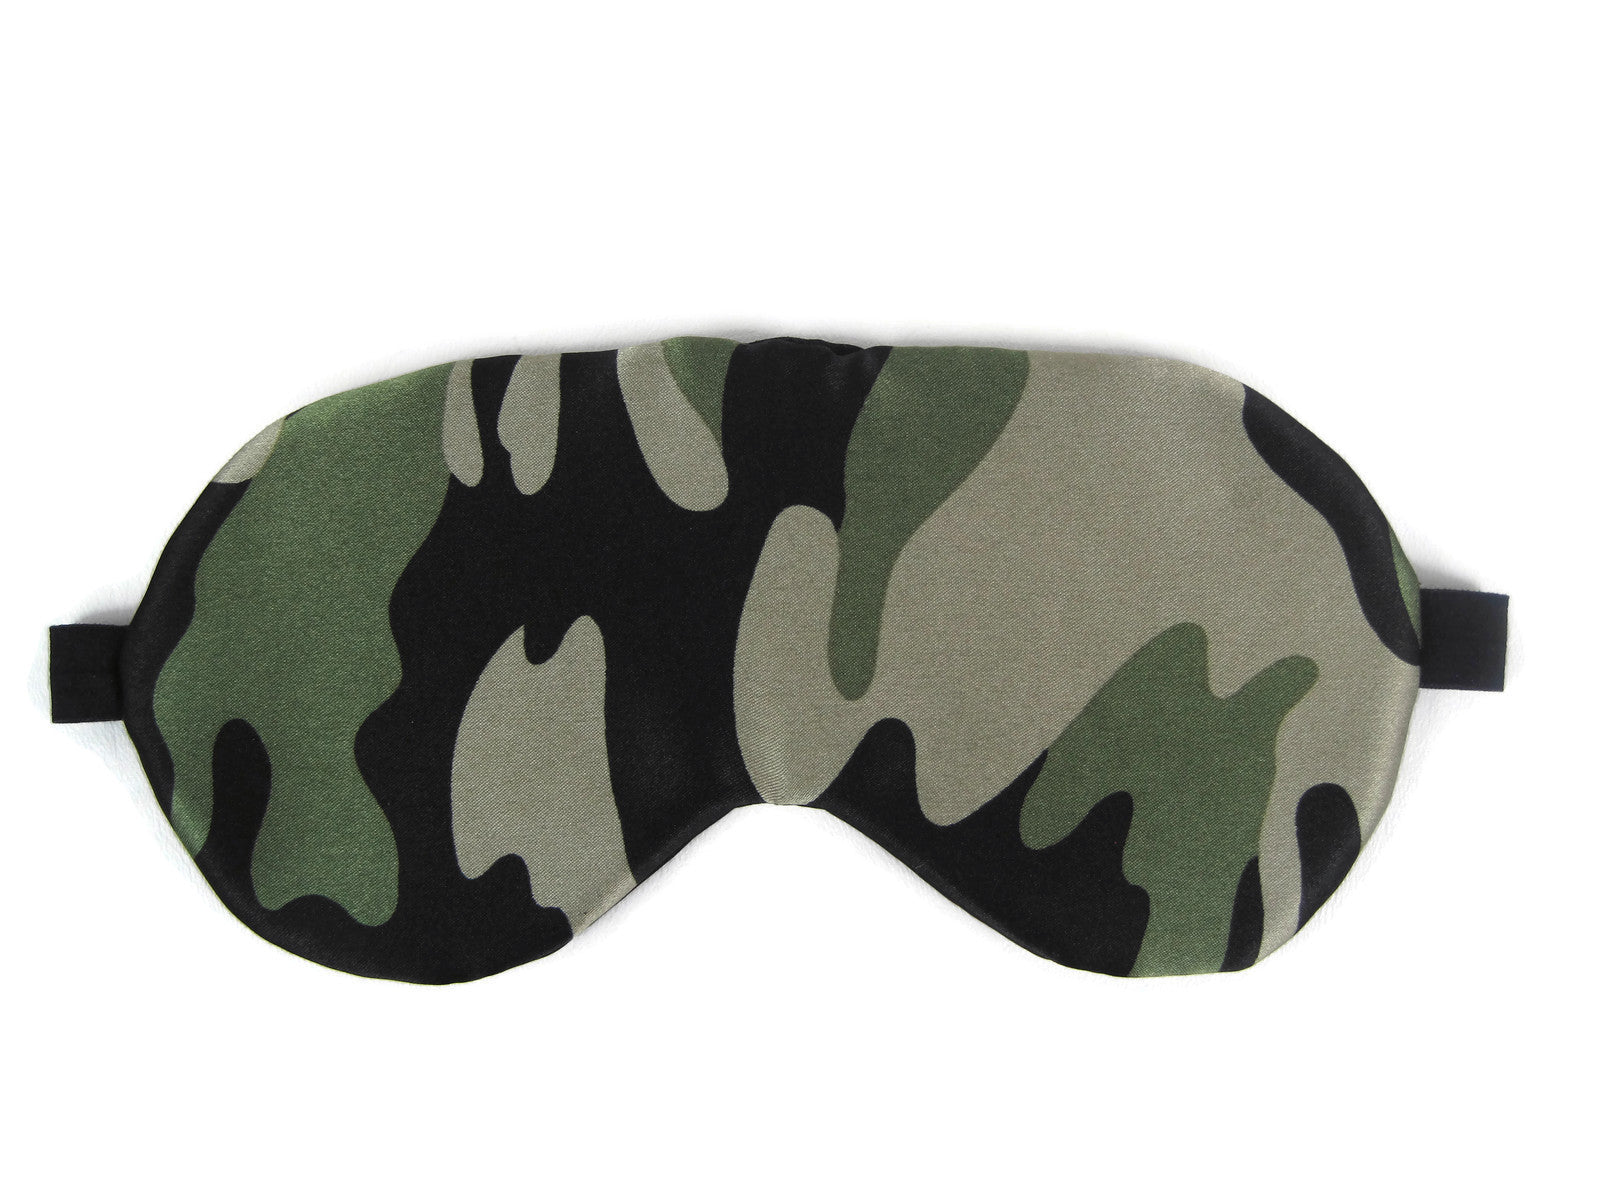 Satin Reversible Sleep Mask - Camouflage/Black